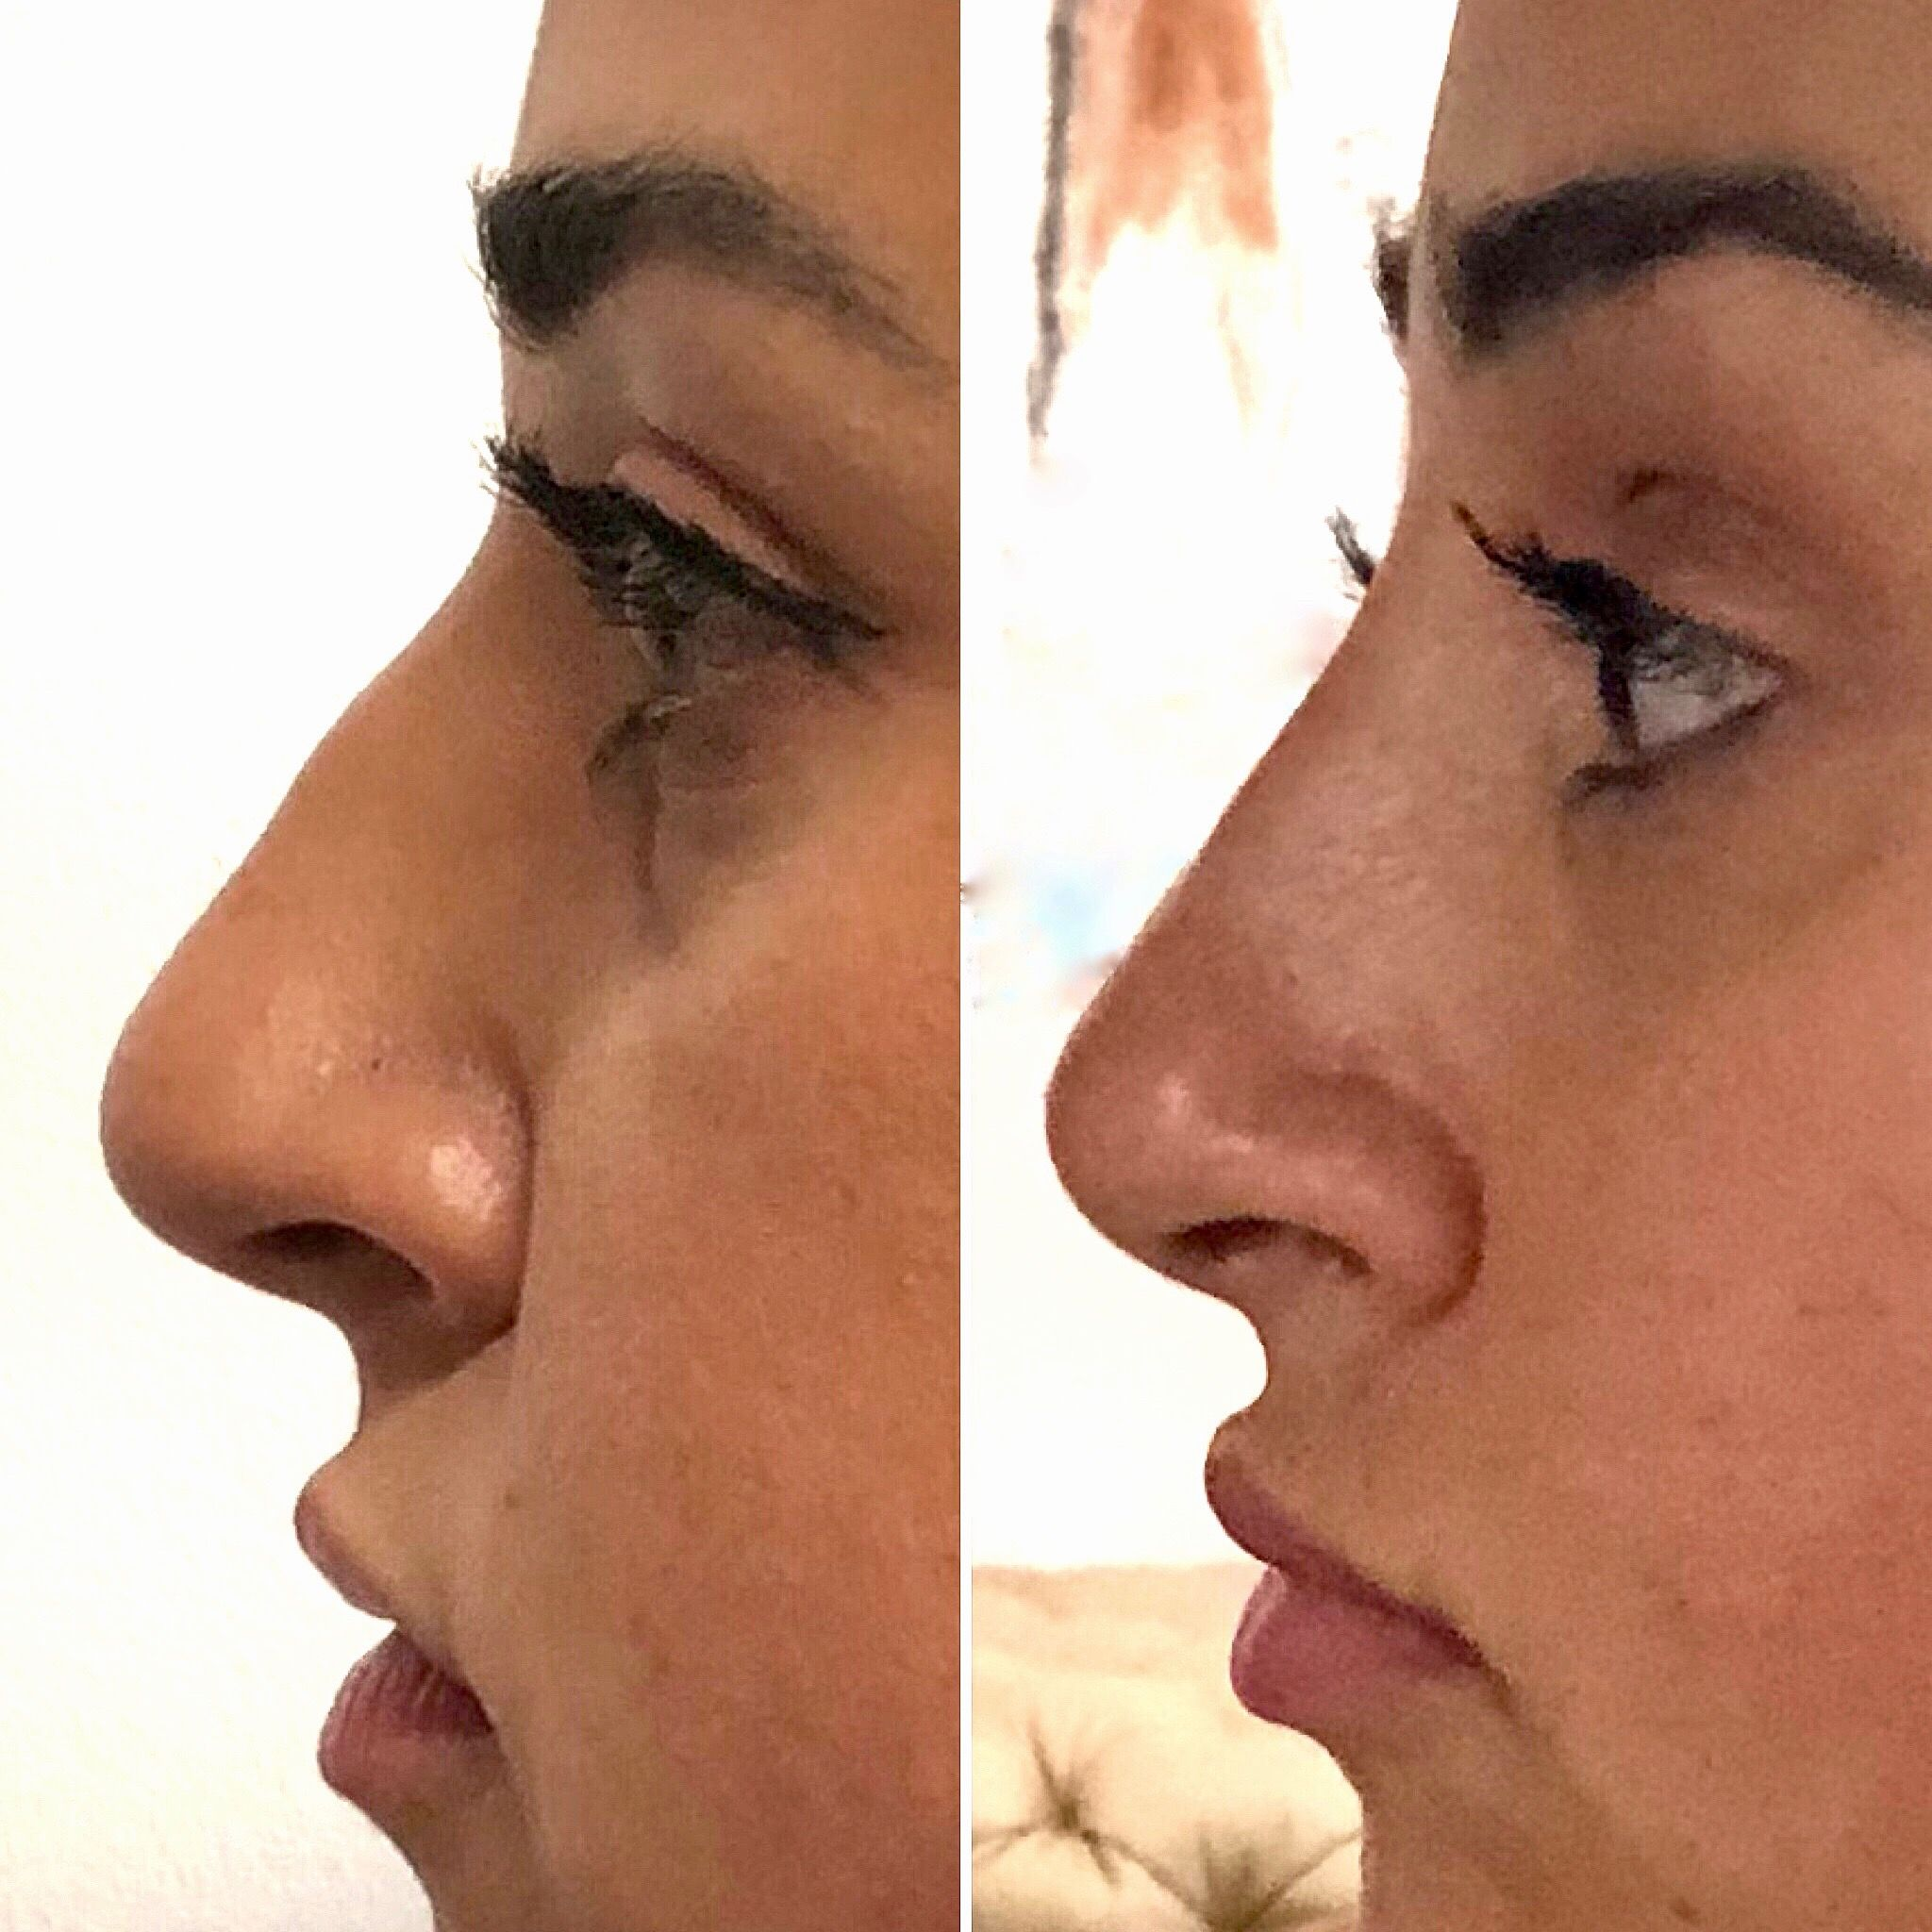 Non Surgical Nose Job With Dr Cohen Will Give You All The Benefits Of A Rhinoplasty Without Surgery Nose Job Rhinoplasty Nose Fillers